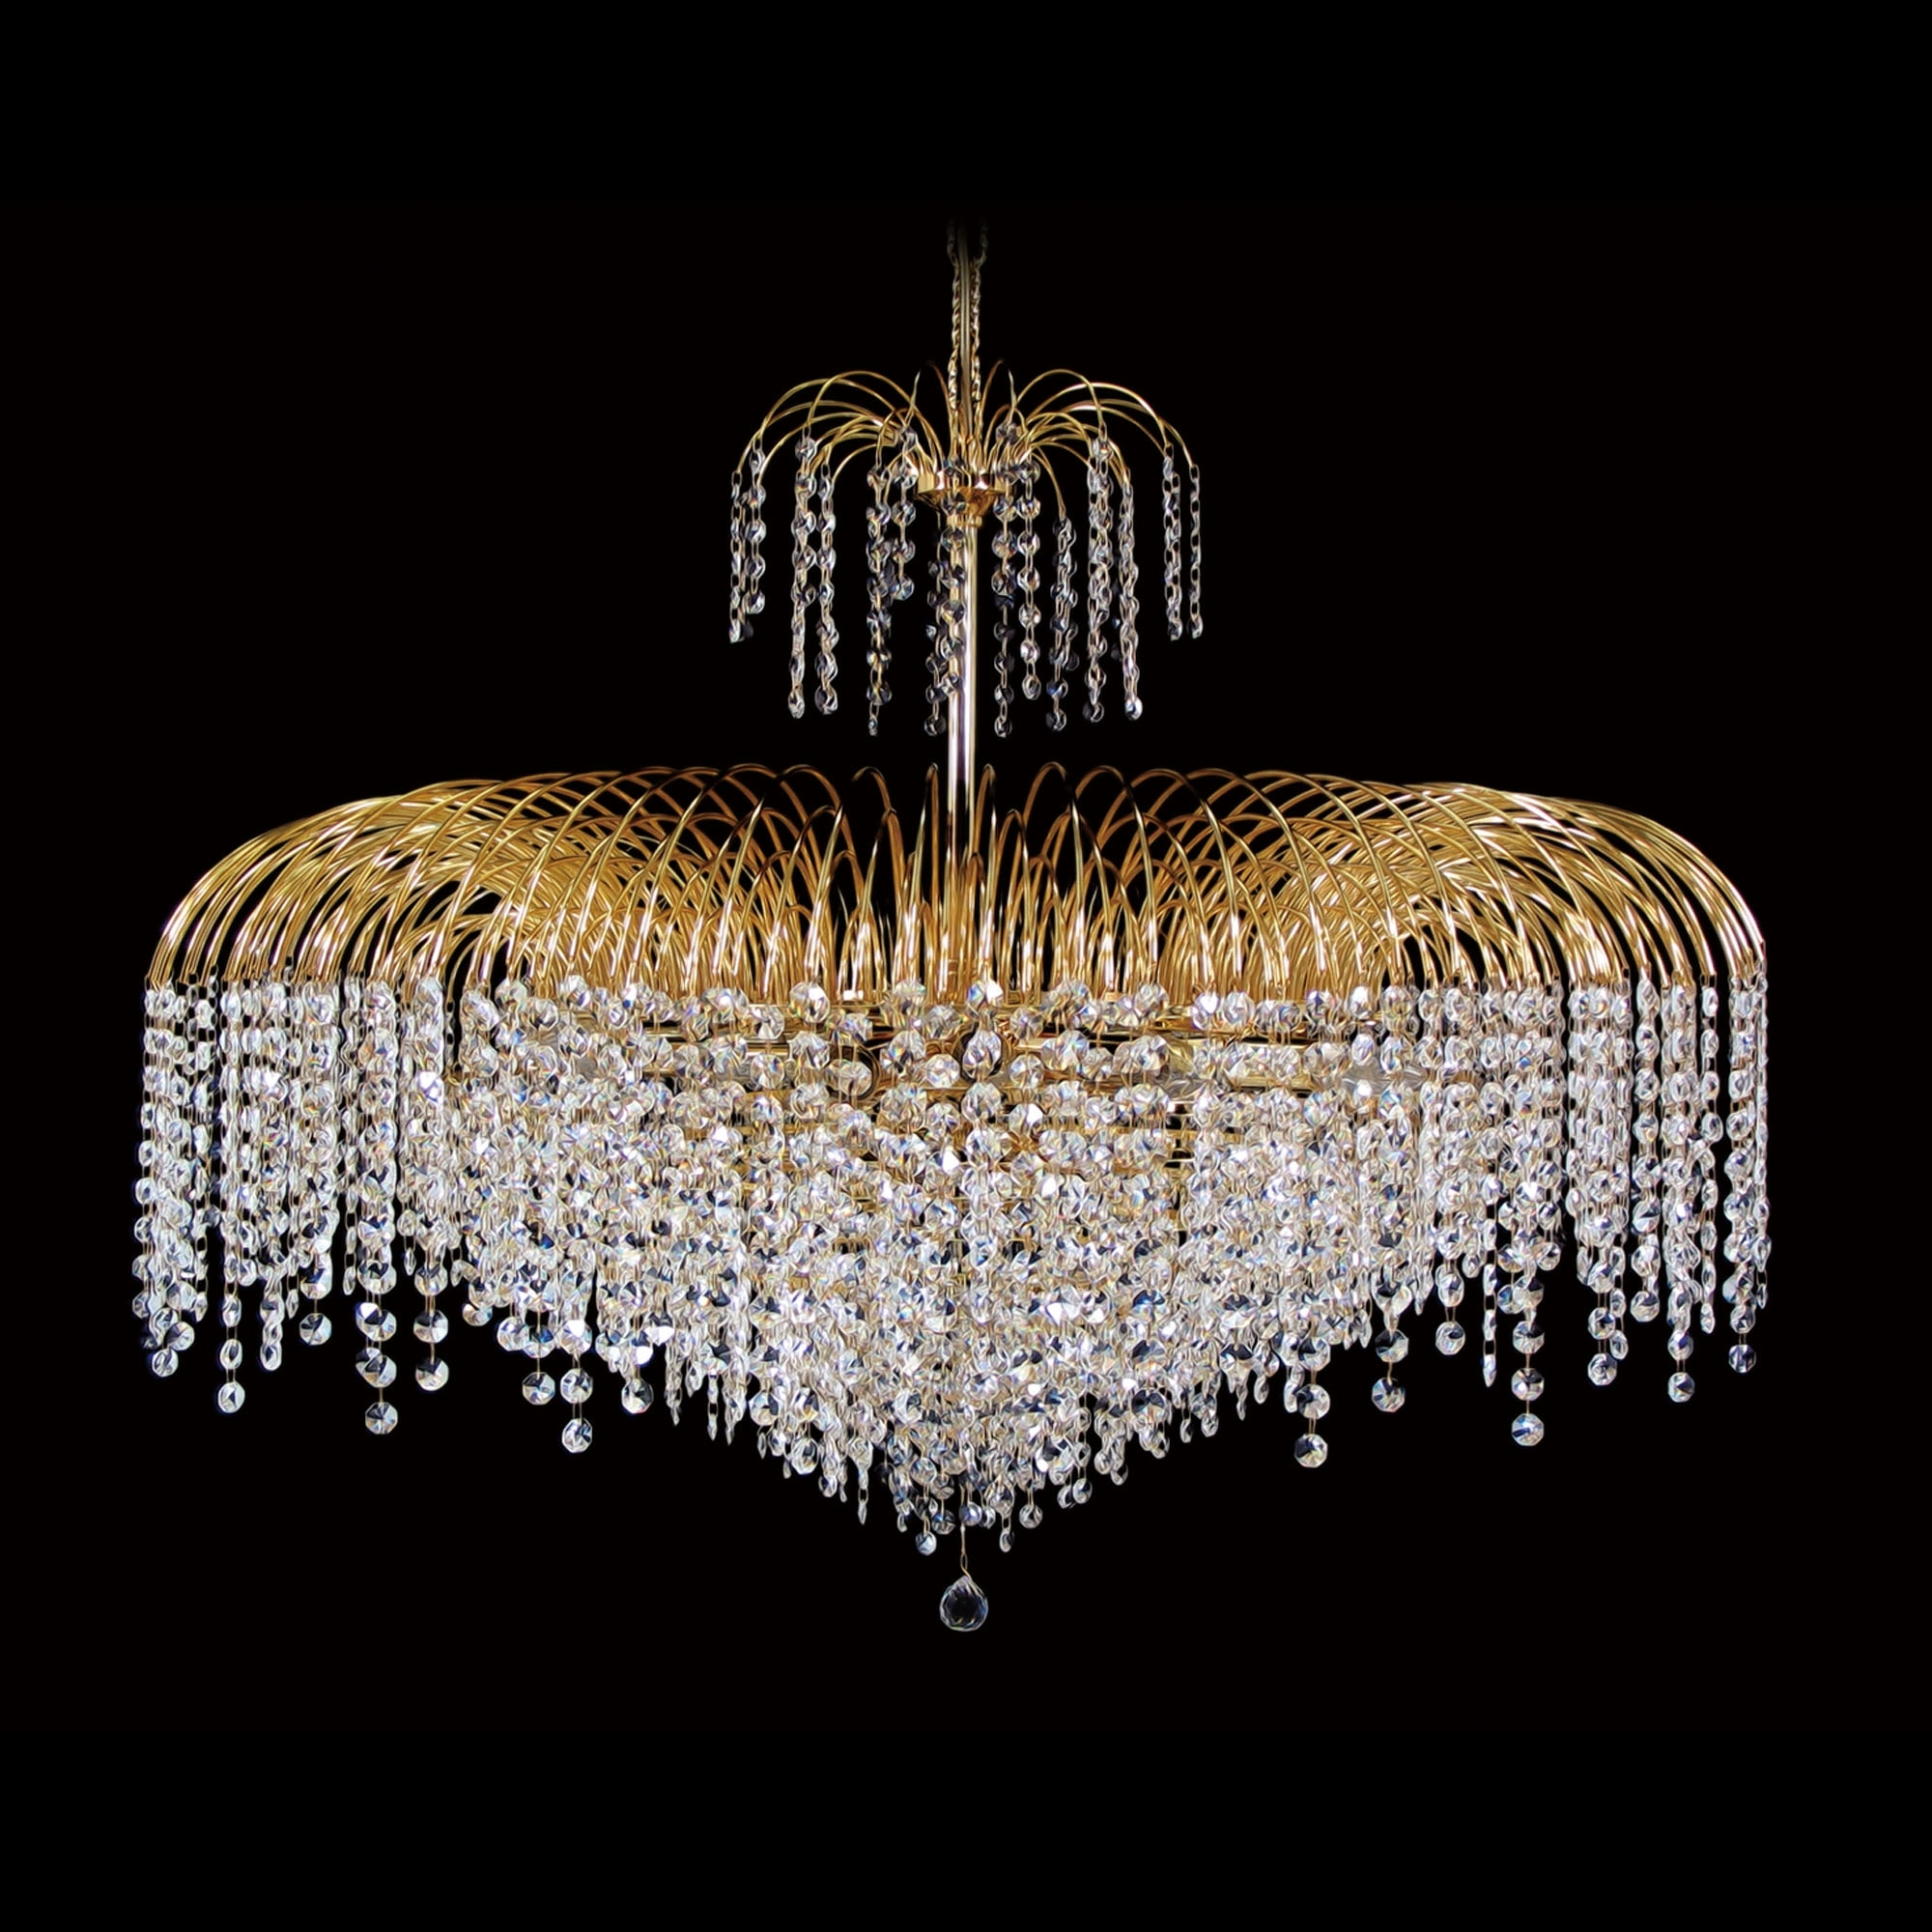 """2019 15 Light – 32"""" Asfour Lead Crystal 24ct Gold Plated Waterfall With Regard To Crystal Waterfall Chandelier (View 10 of 20)"""